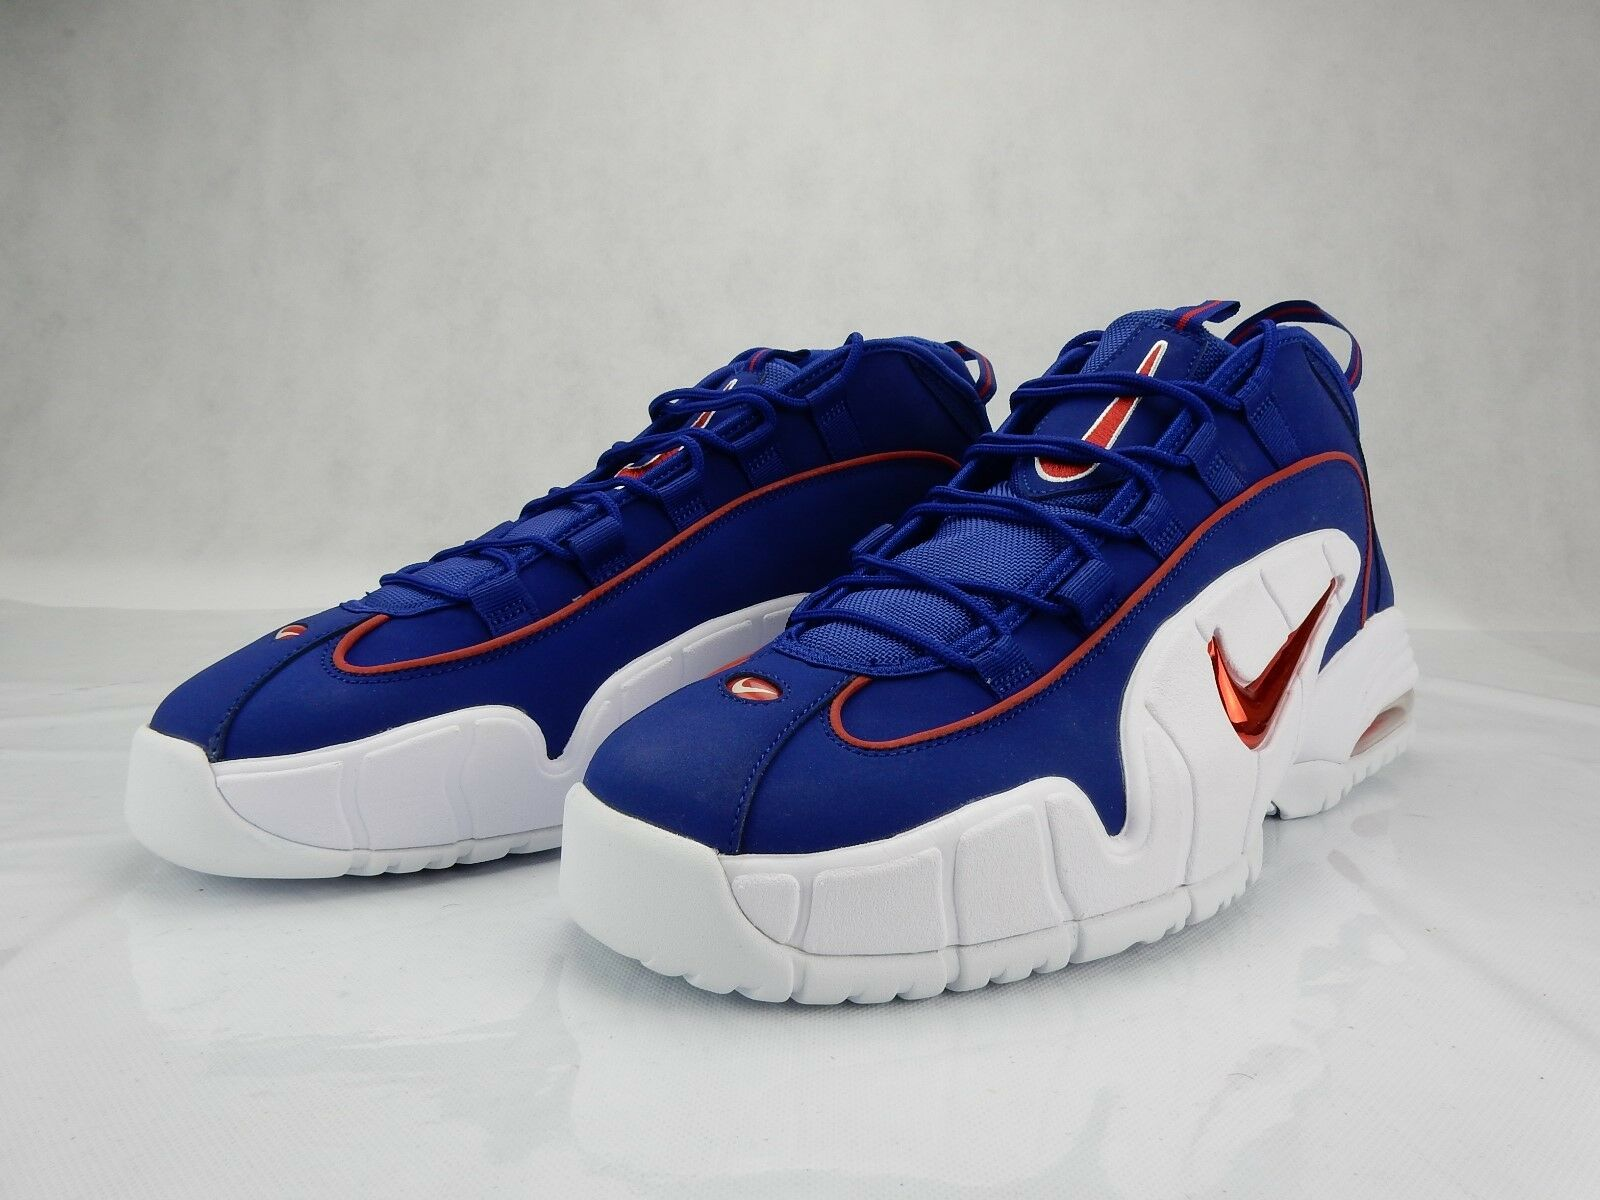 Nike Air Max Penny 1 Lil Penny 685153 400 White Red Blue New Mens Size 12.5 S